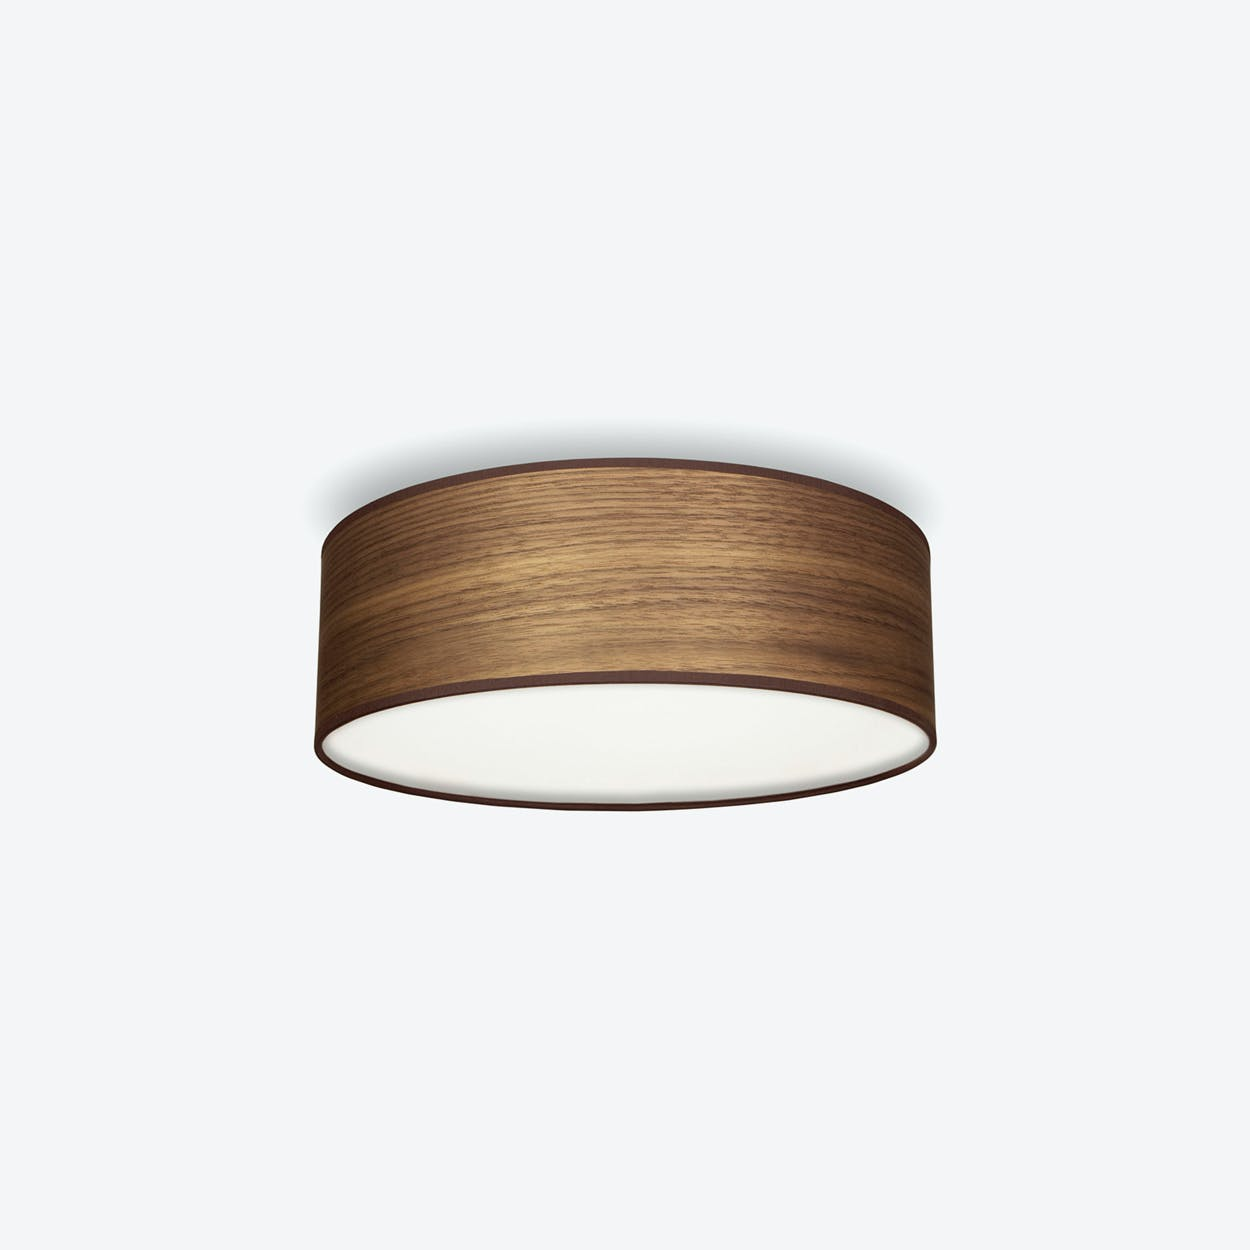 TSURI Medium Ceiling Lamp in Walnut